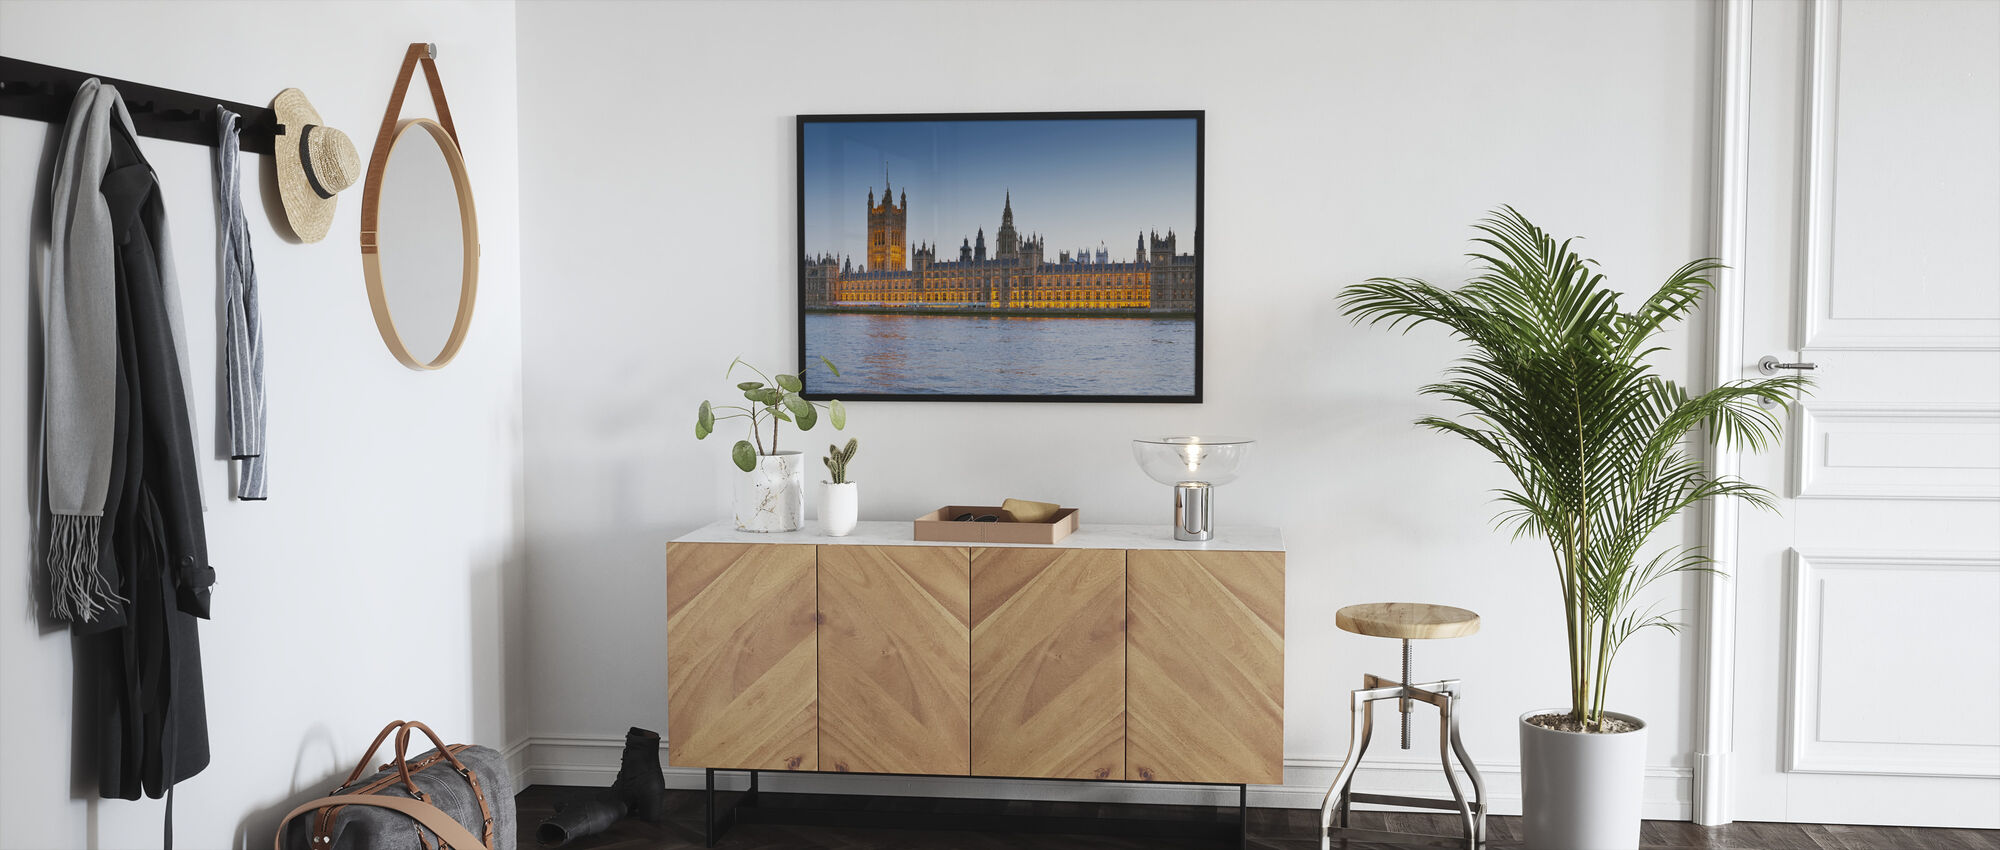 Big Ben and Houses of Parliament - Framed print - Hallway